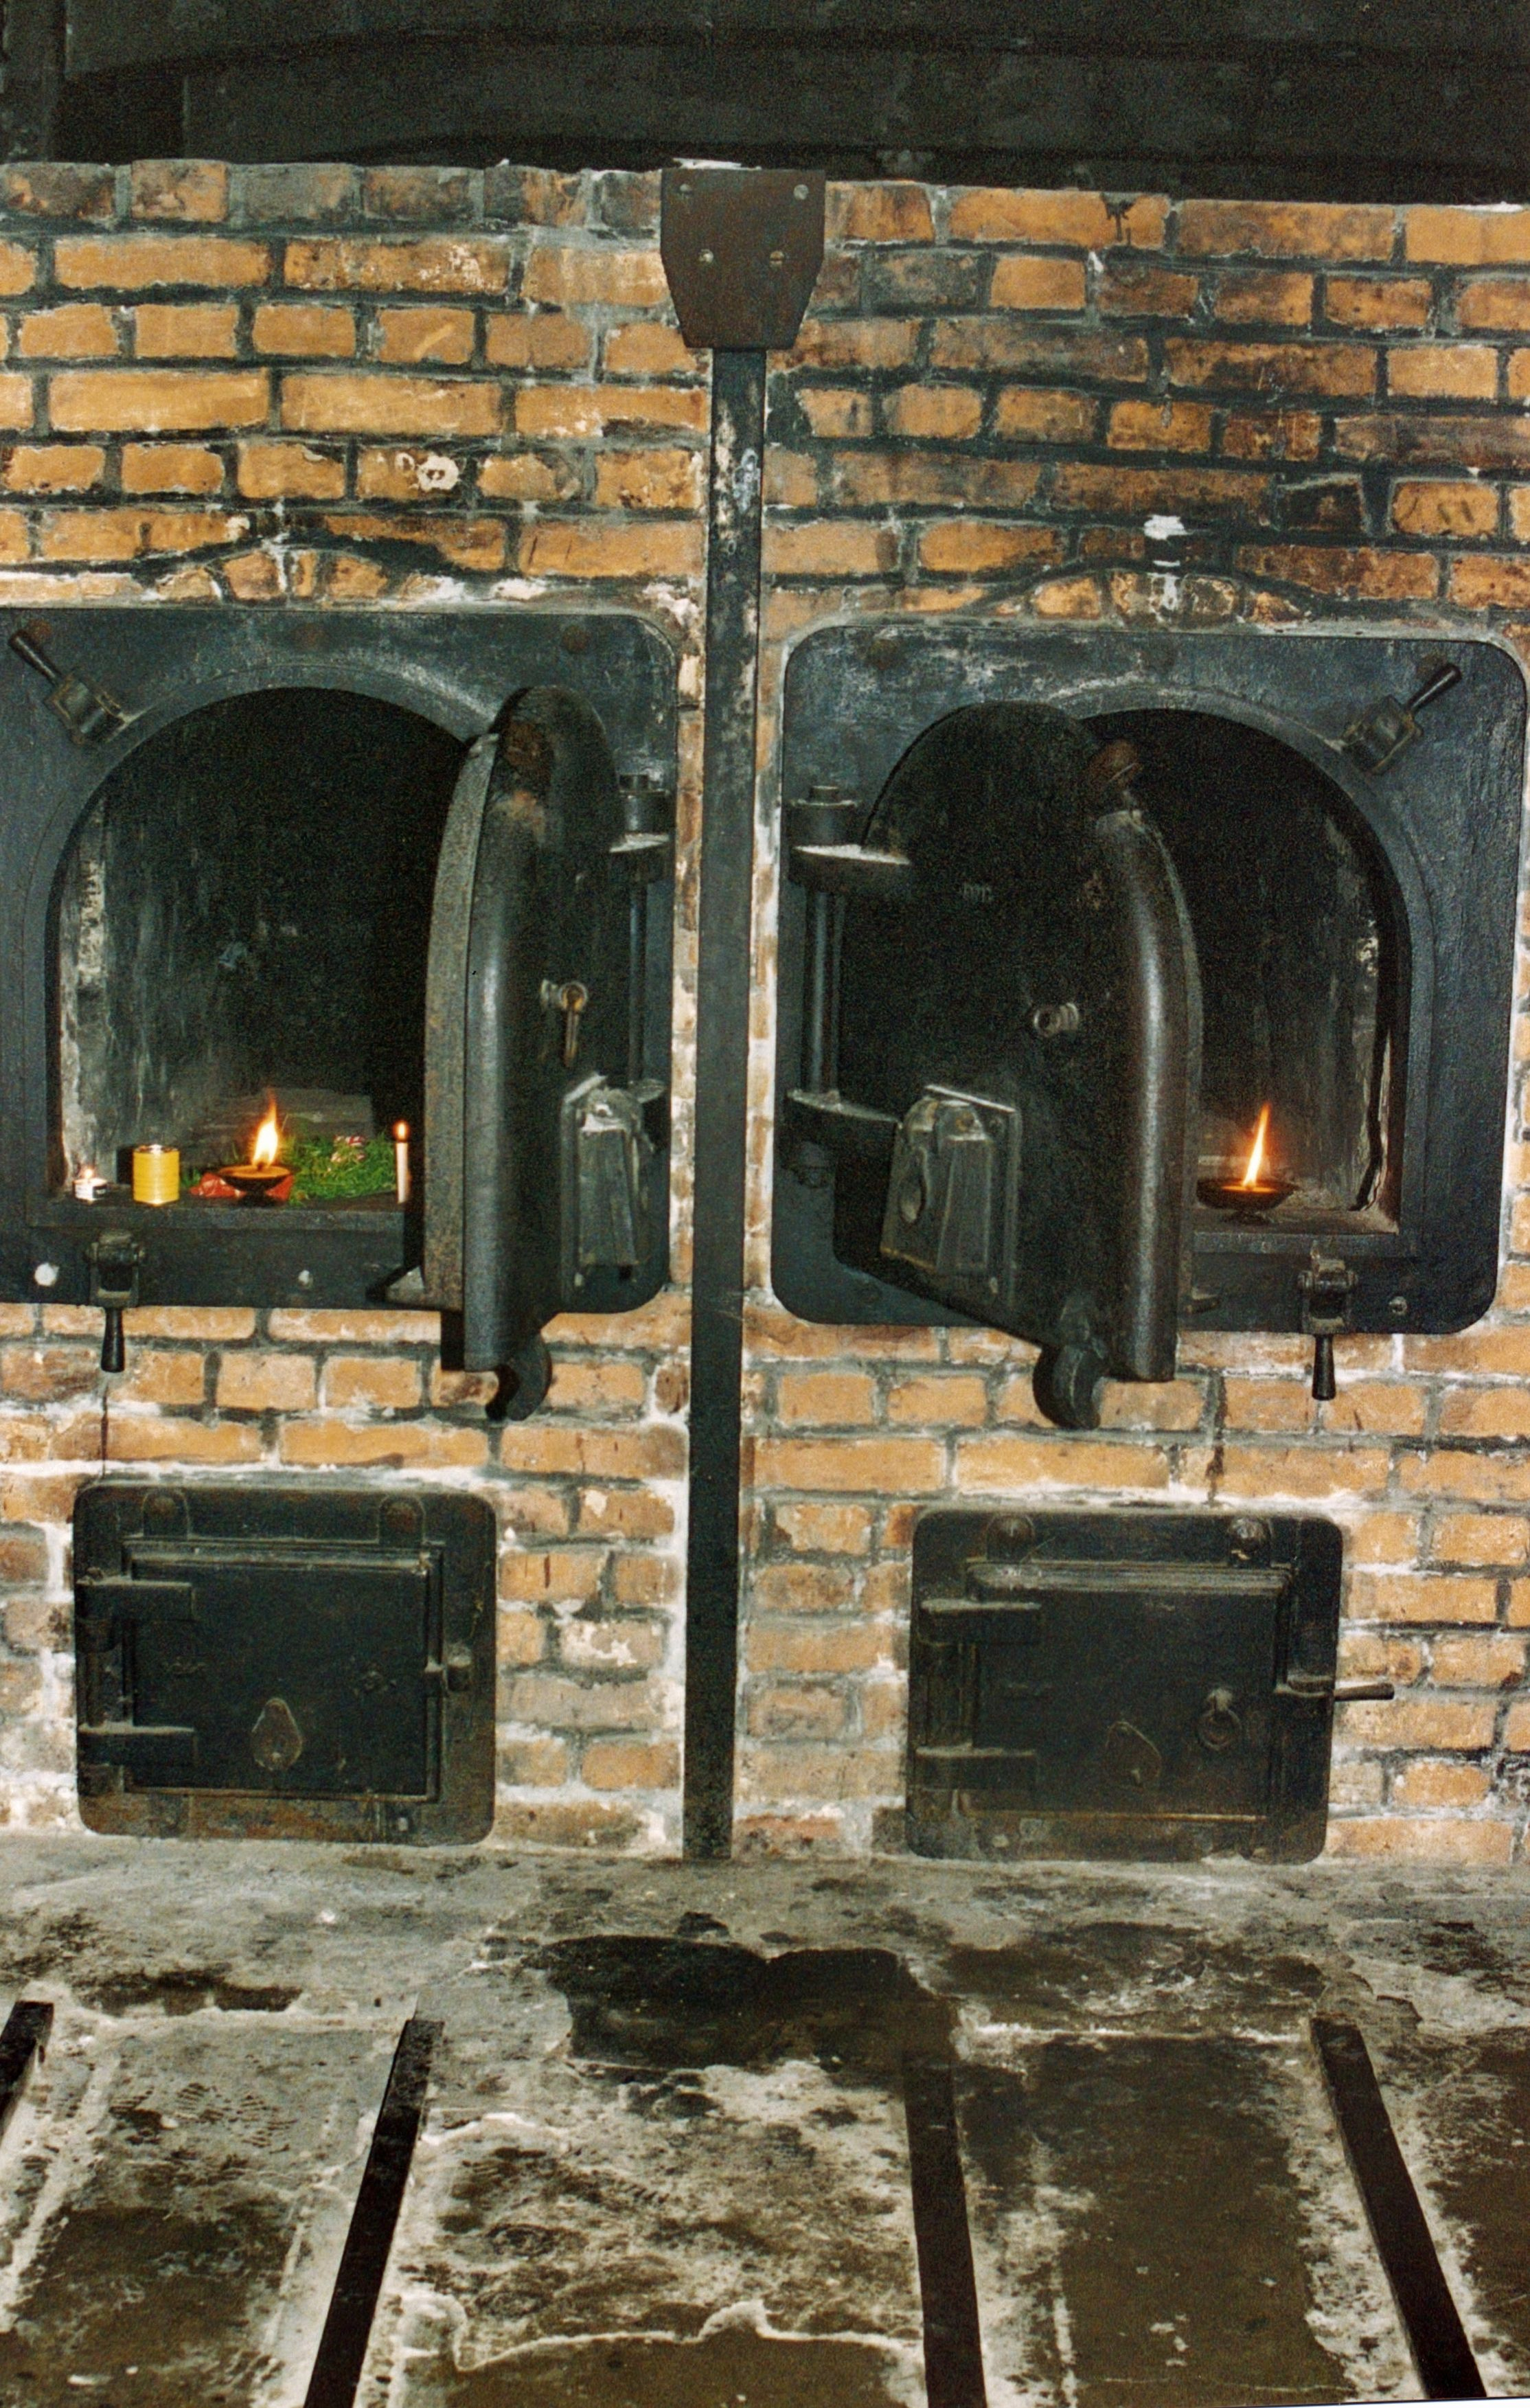 Poles have you forgotten who turned off your stoves in Auschwitz